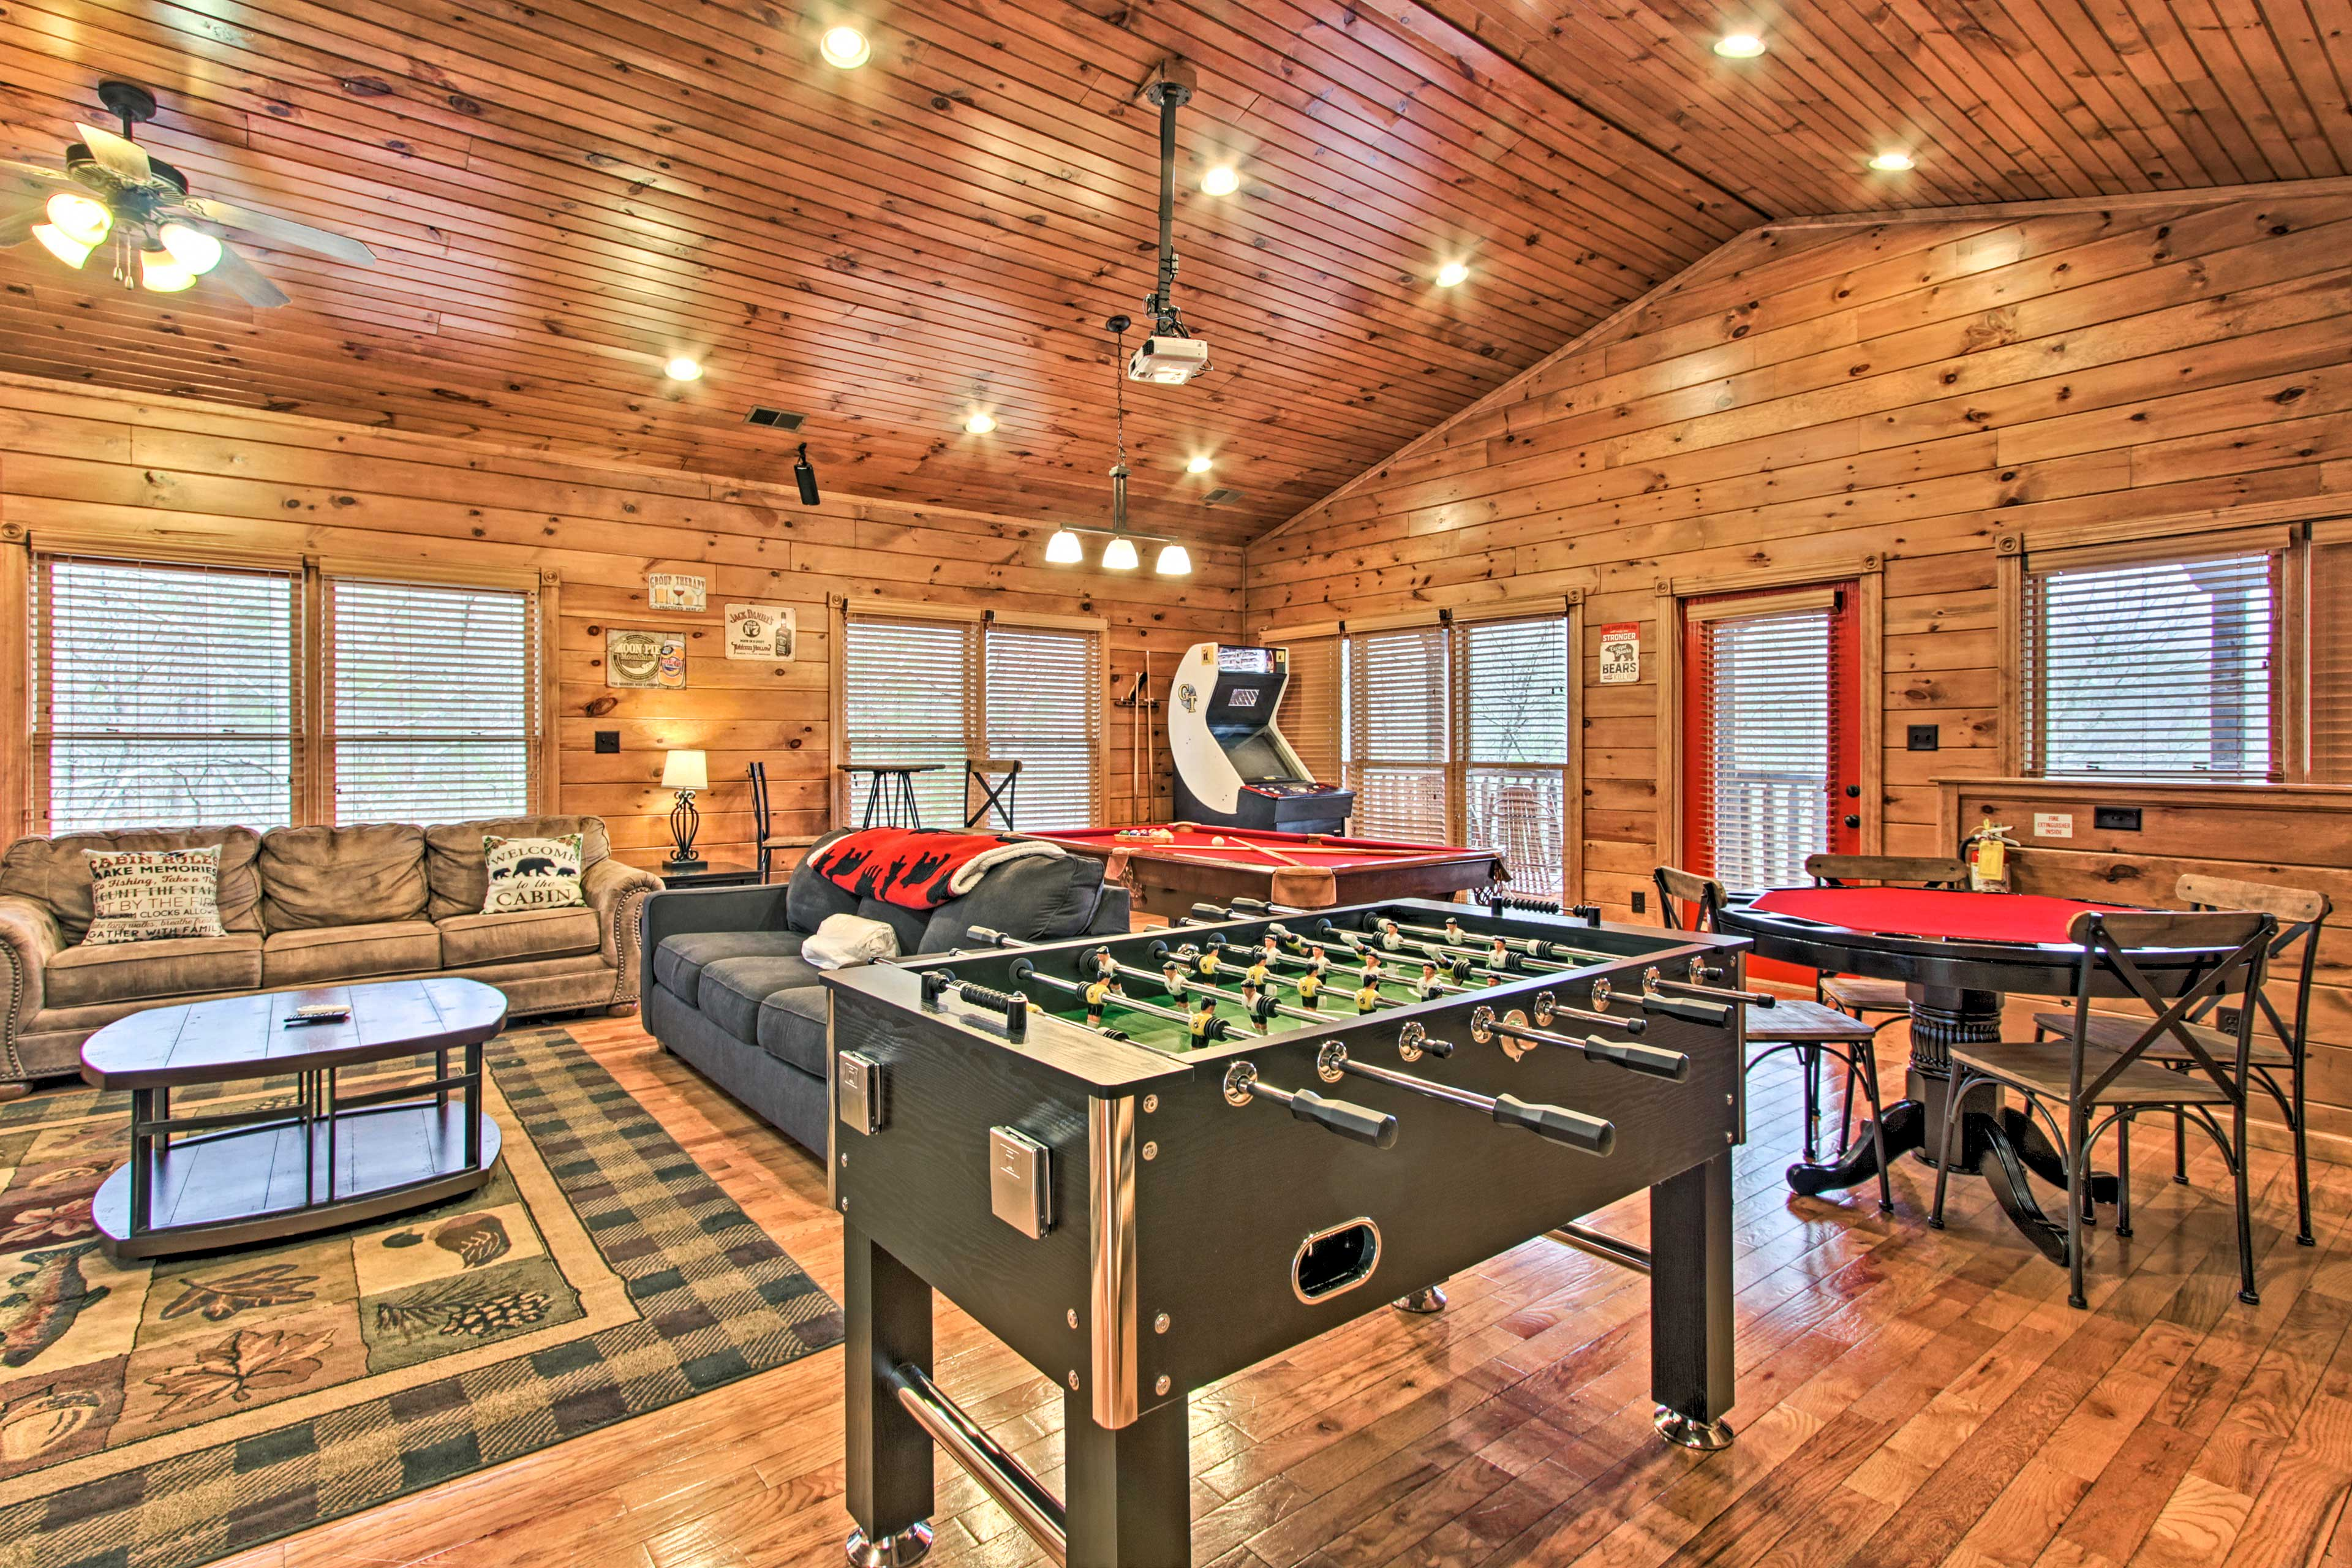 Foosball, cards, billiards, or arcade games - the choice is yours!